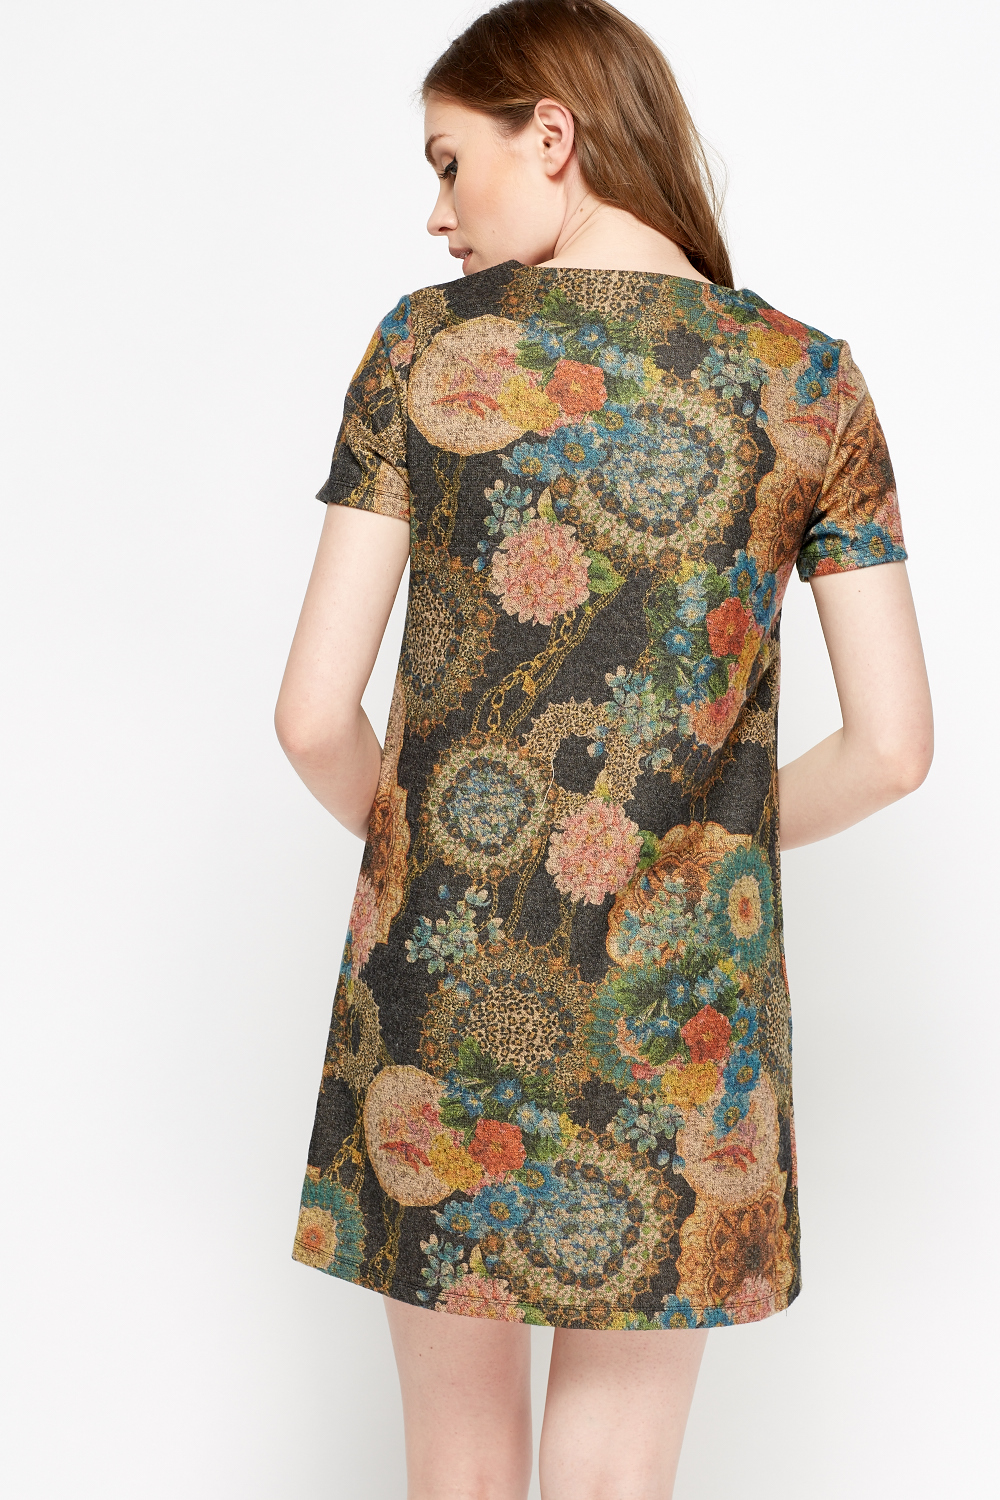 Detailed Neck Mix Print Dress Green Multi Or Charcoal